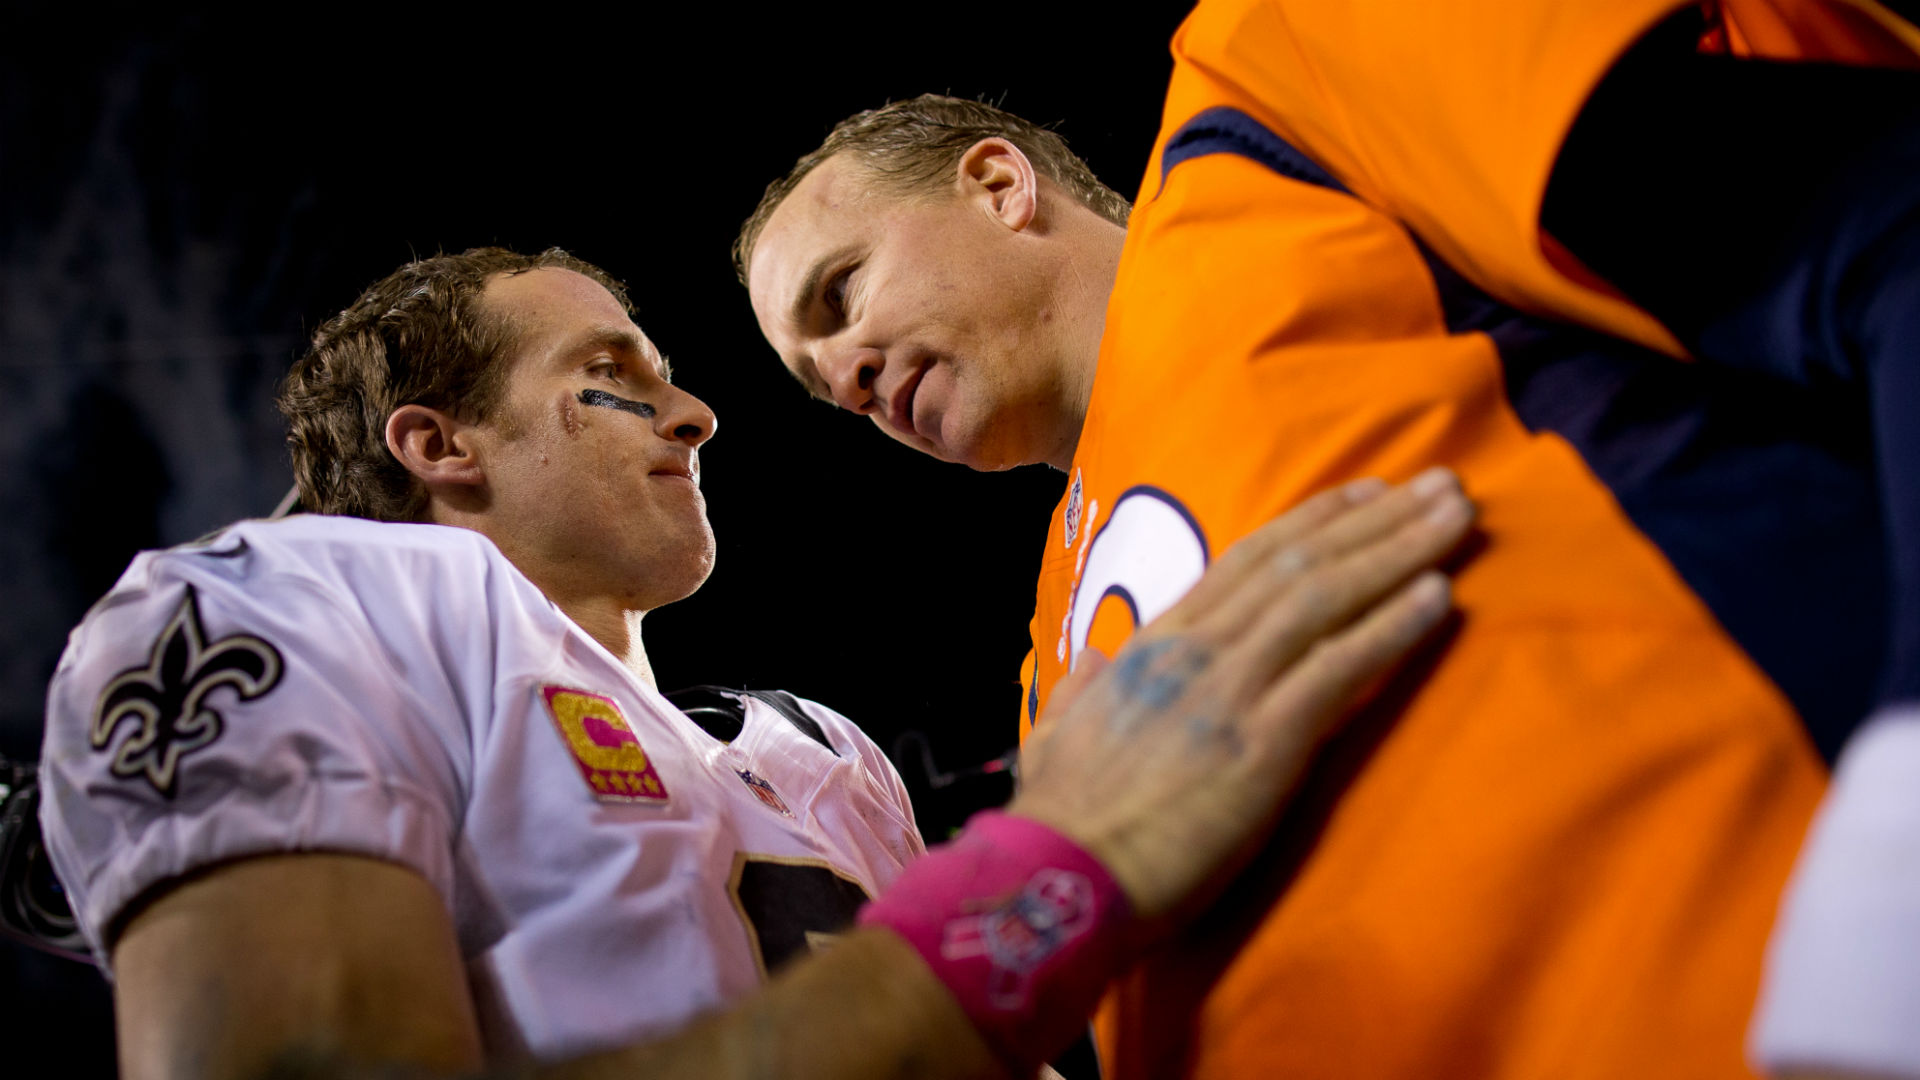 Peyton Manning has hilarious reaction to Drew Brees breaking his record